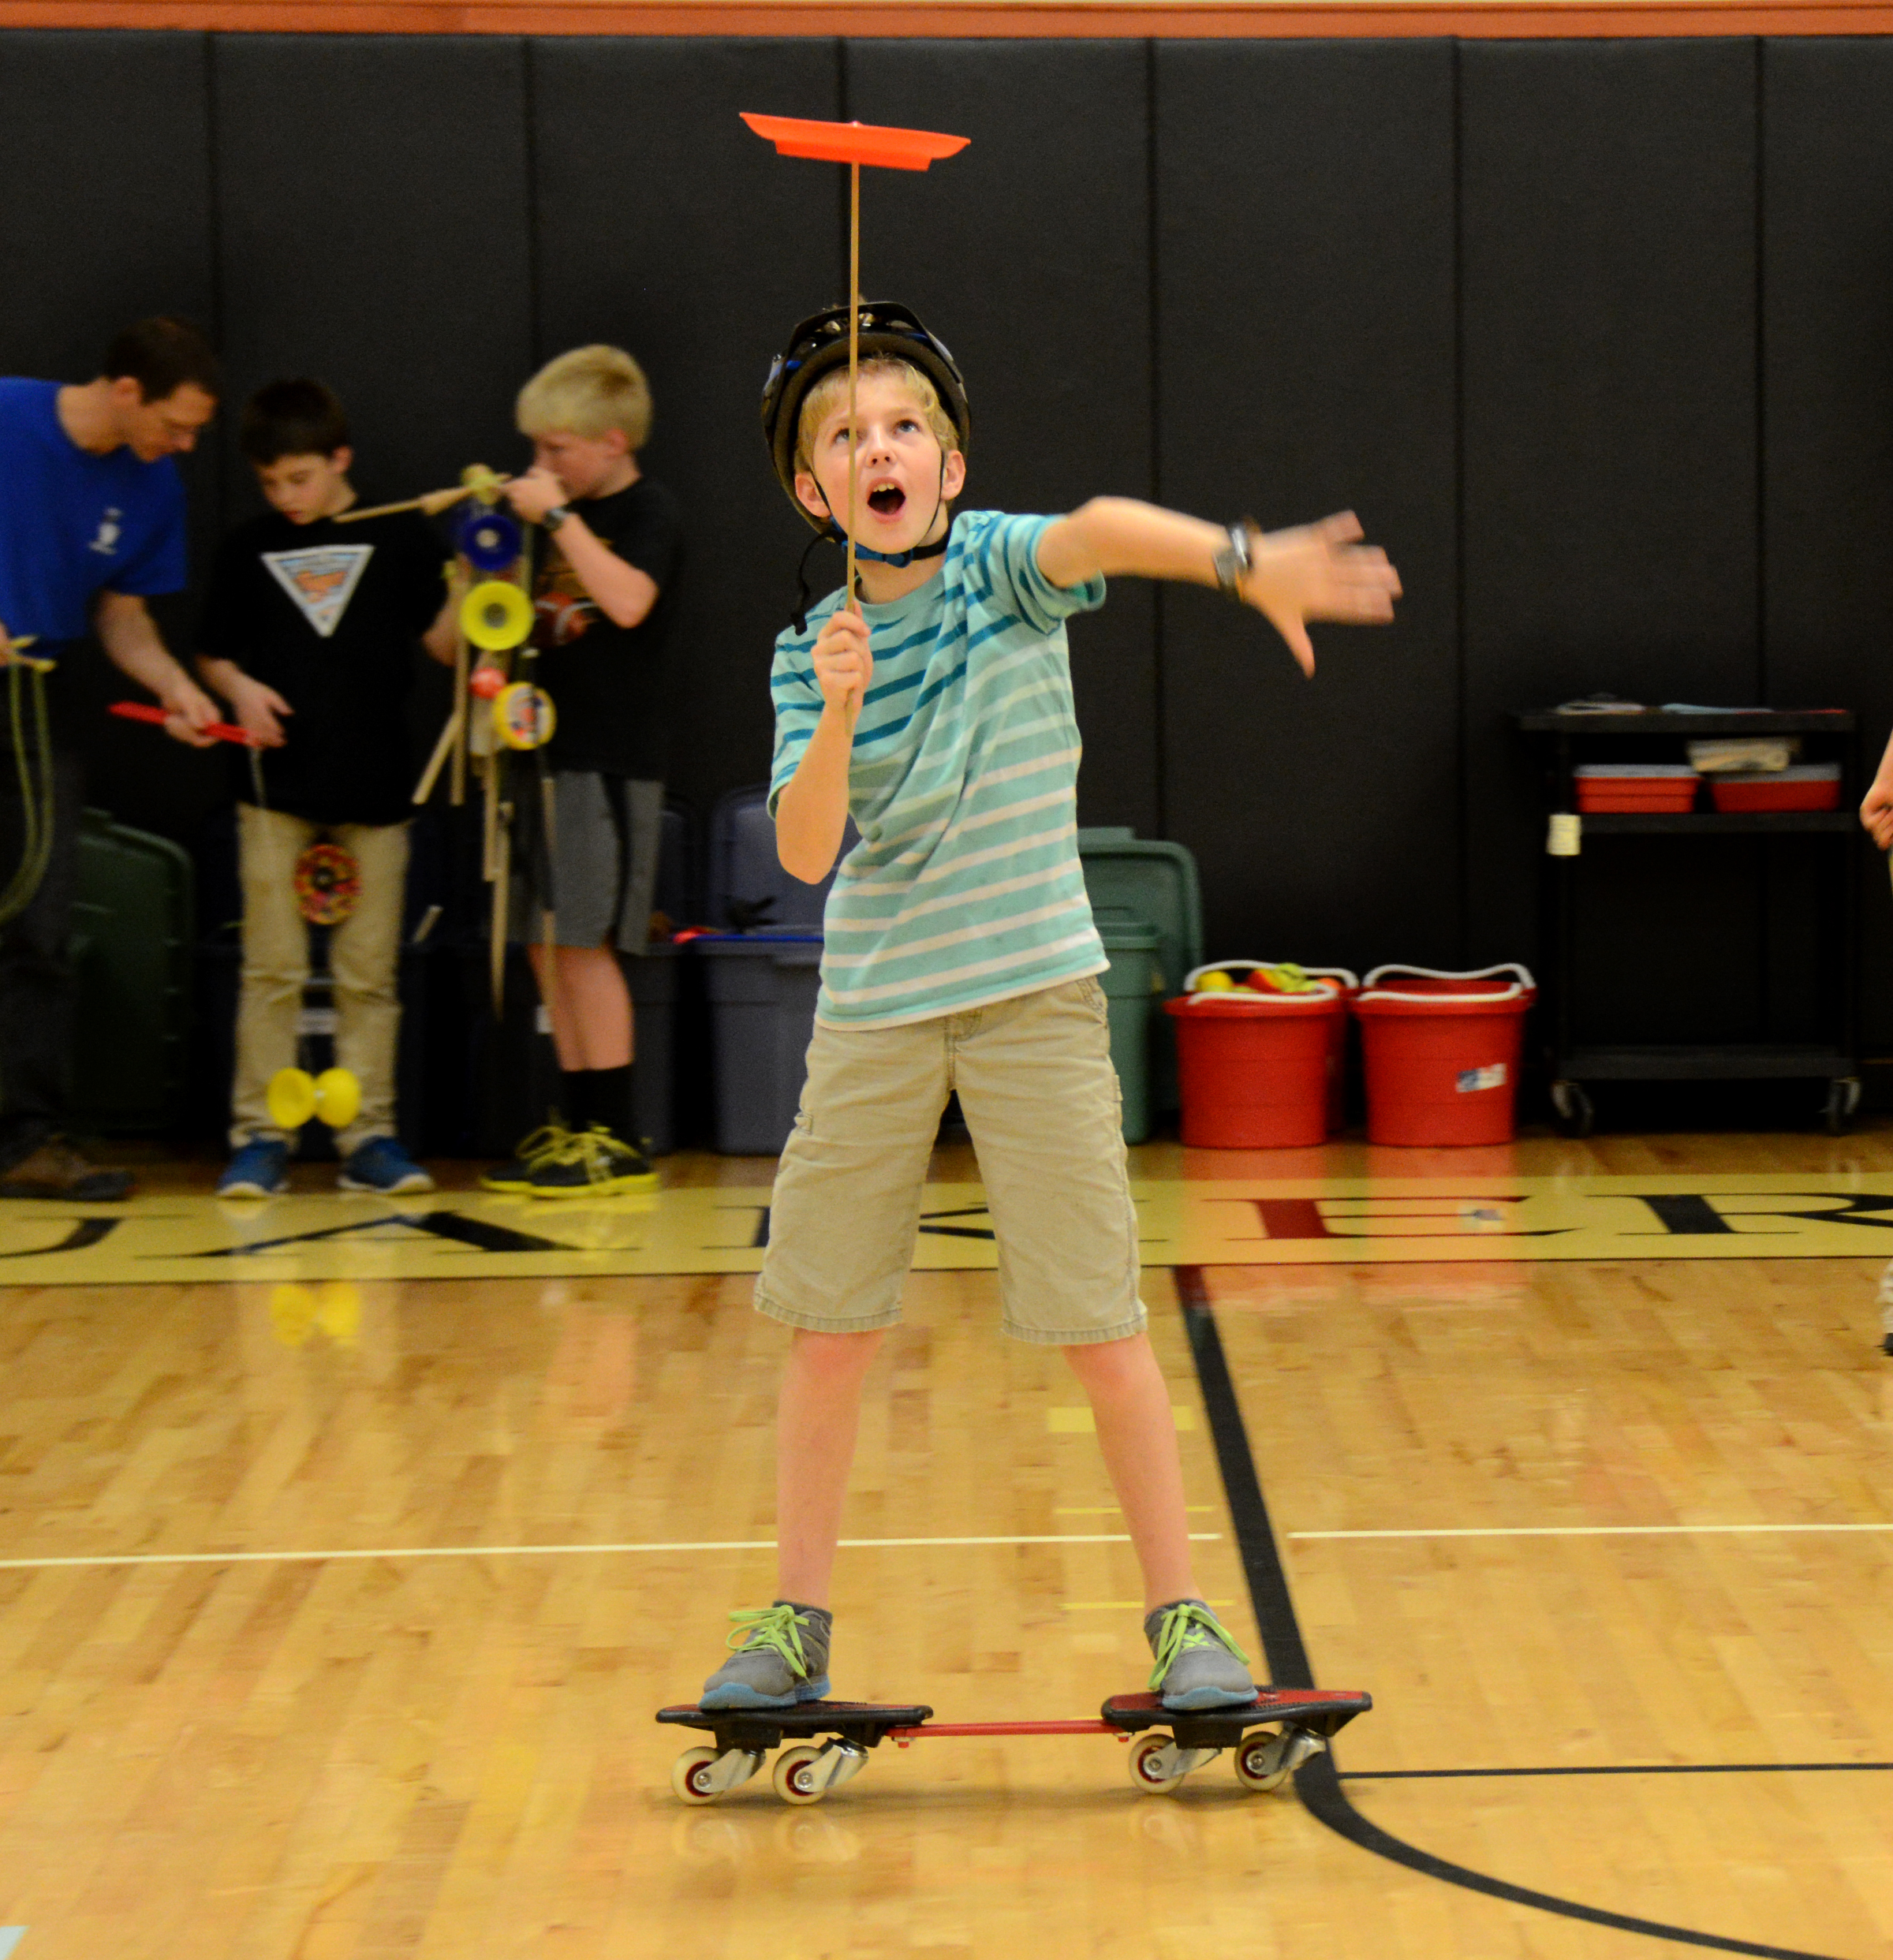 Juggling Festival Coming To Quaker Valley Middle School